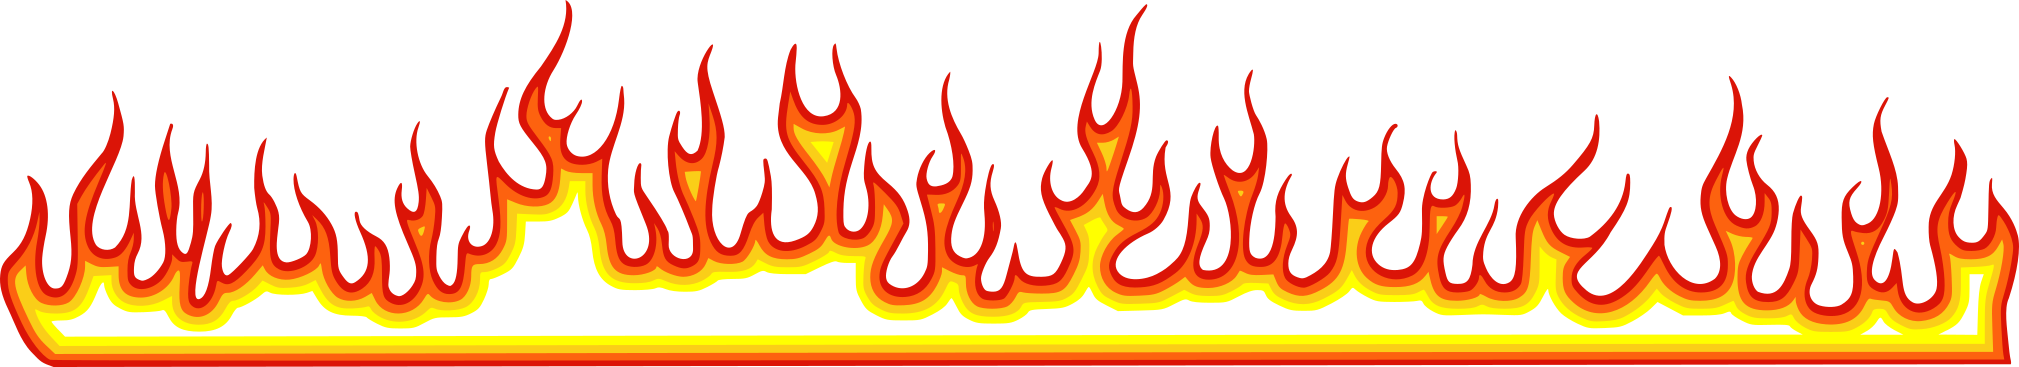 cartoon-fire-border-line-2.png